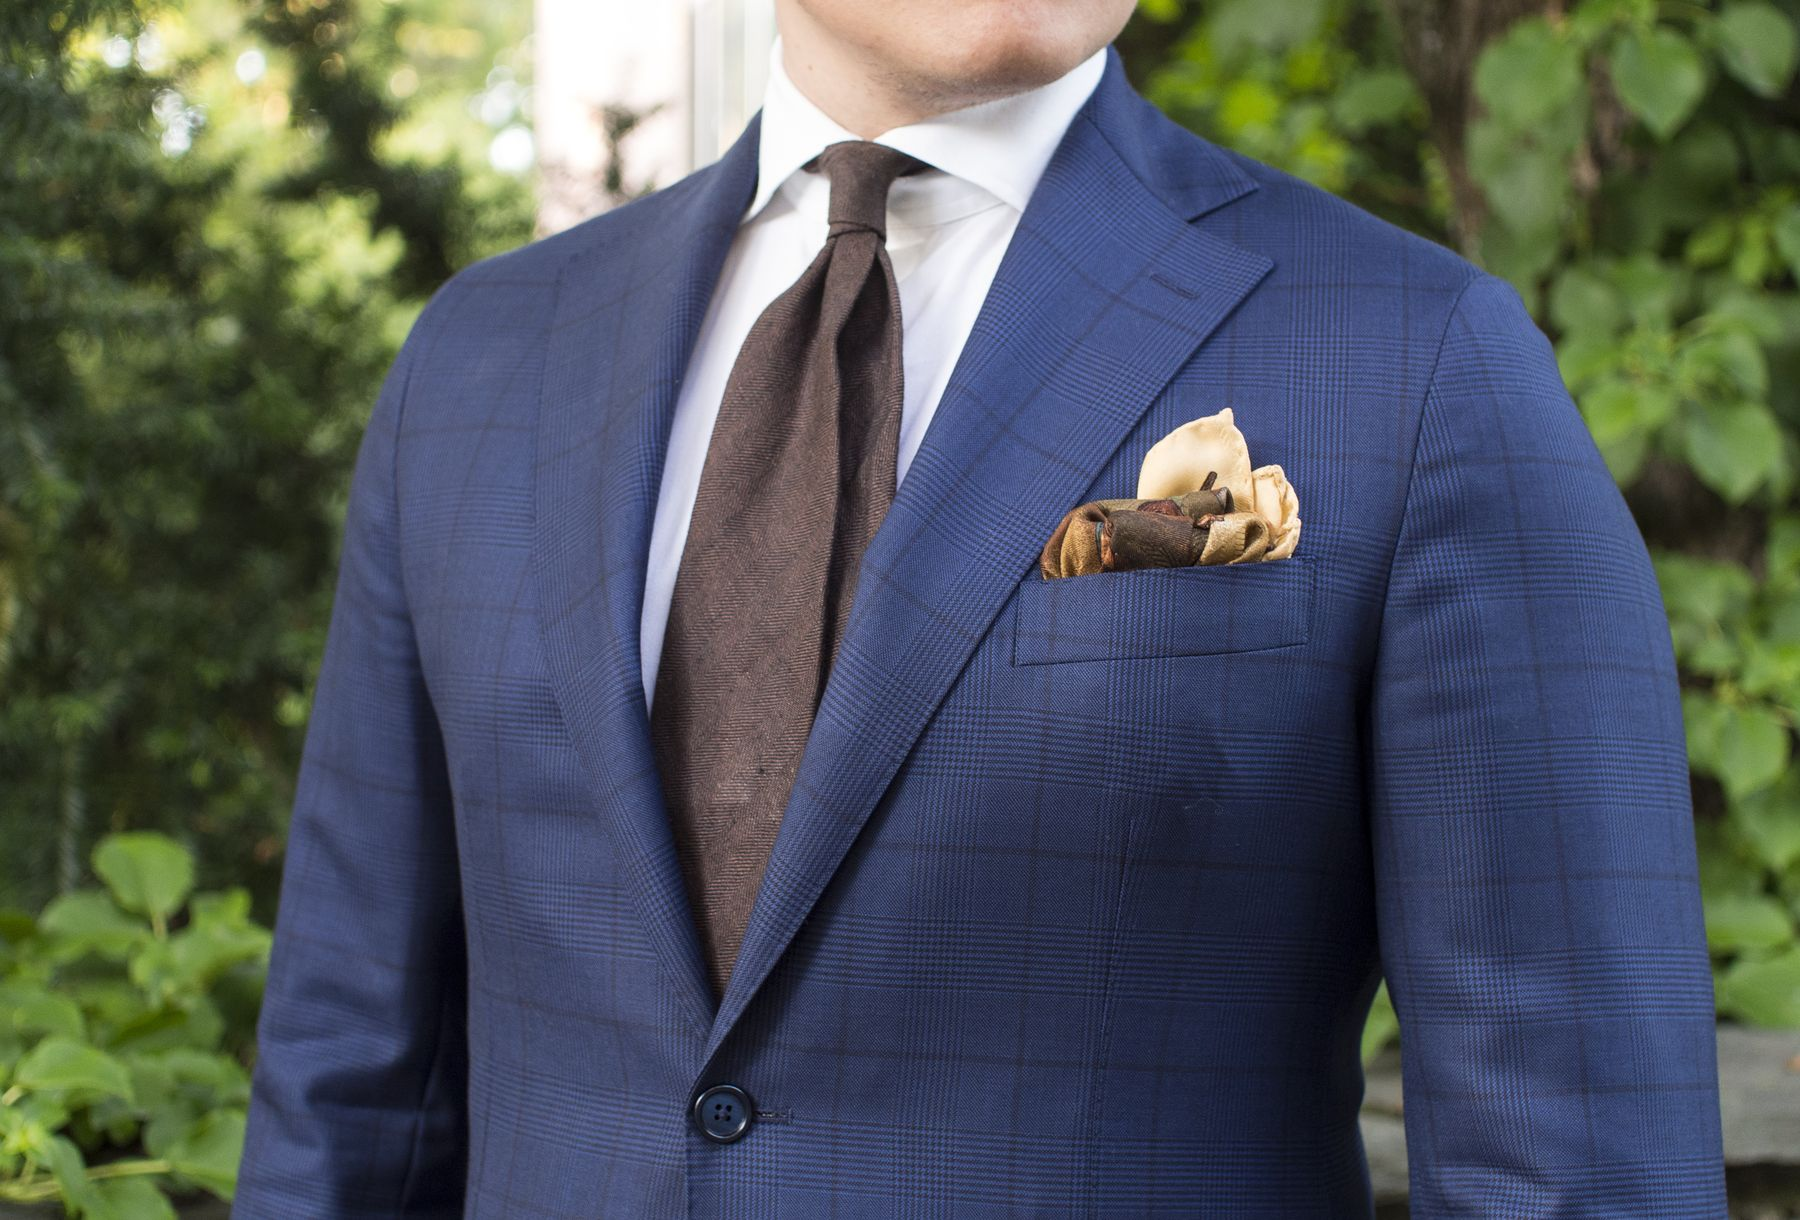 Light grey suit  What shoes and socks to wear to a